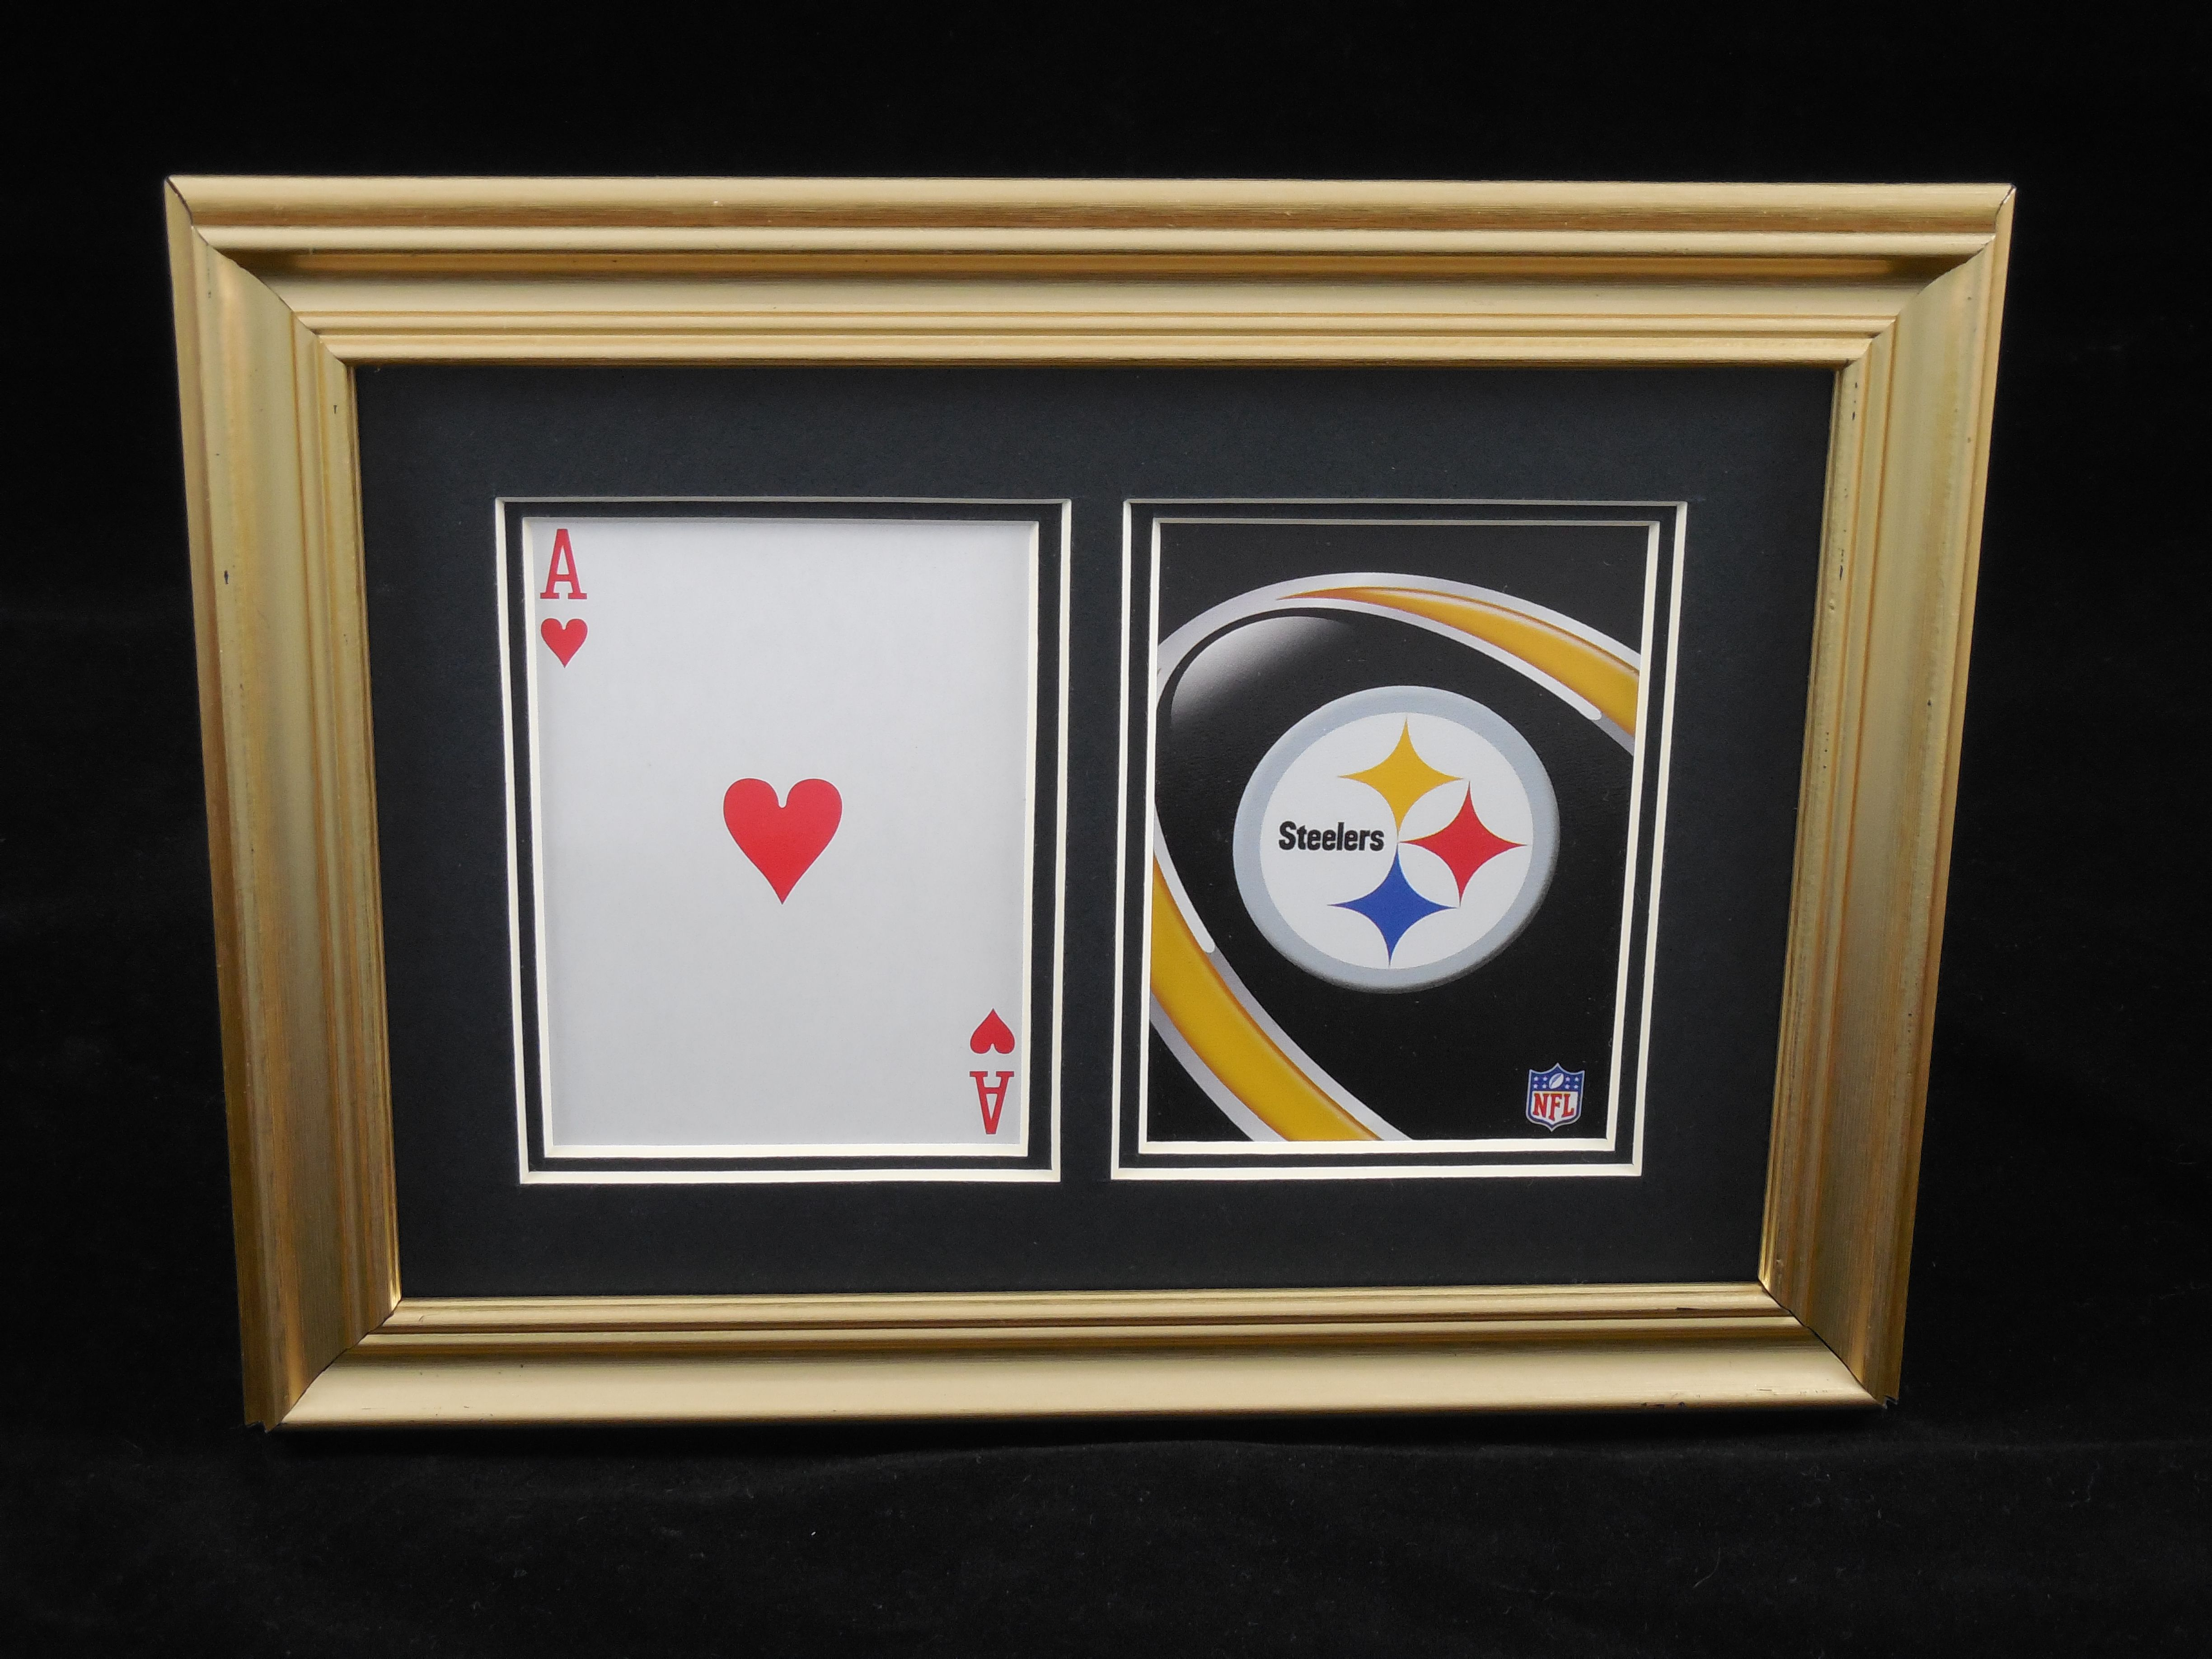 "Pittsburgh Steelers 5x7 ""Blackjack?"" (Hearts) Playing Card Display Available at: https://www.etsy.com/shop/SinCityDisplays"